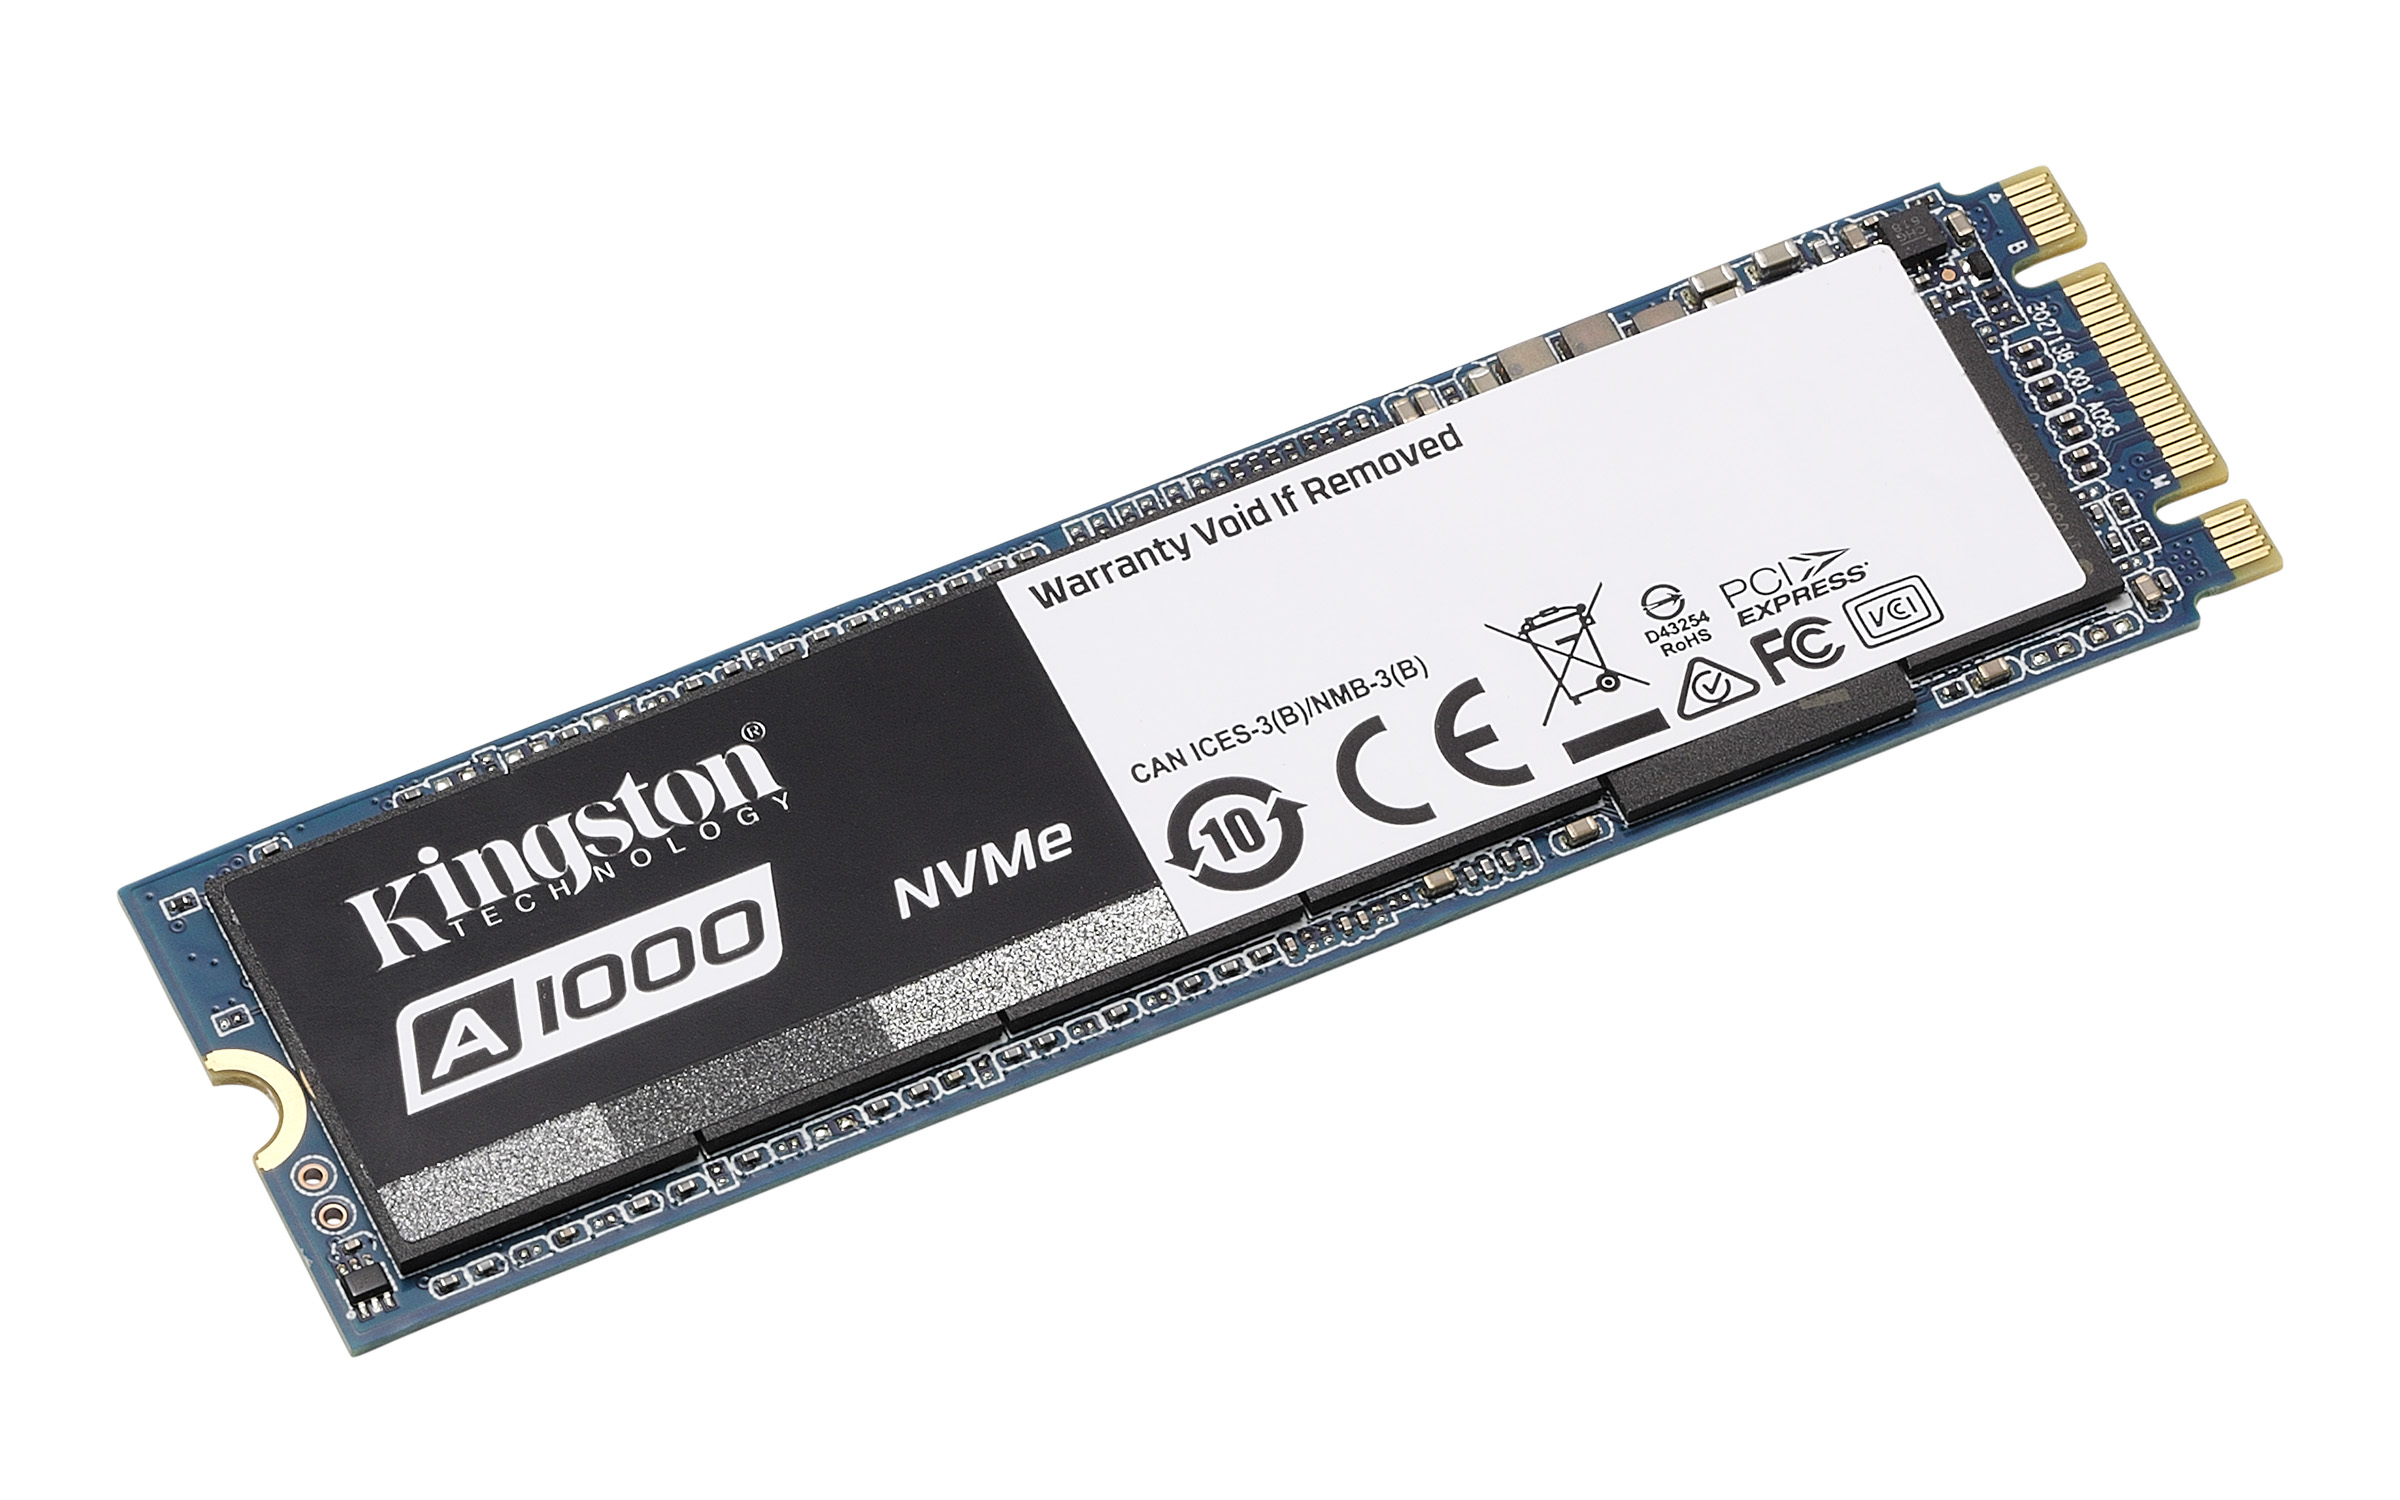 Ổ cứng SSD Kingston A1000 240GB NVMe M.2 PCIe (SA1000M8/240G)